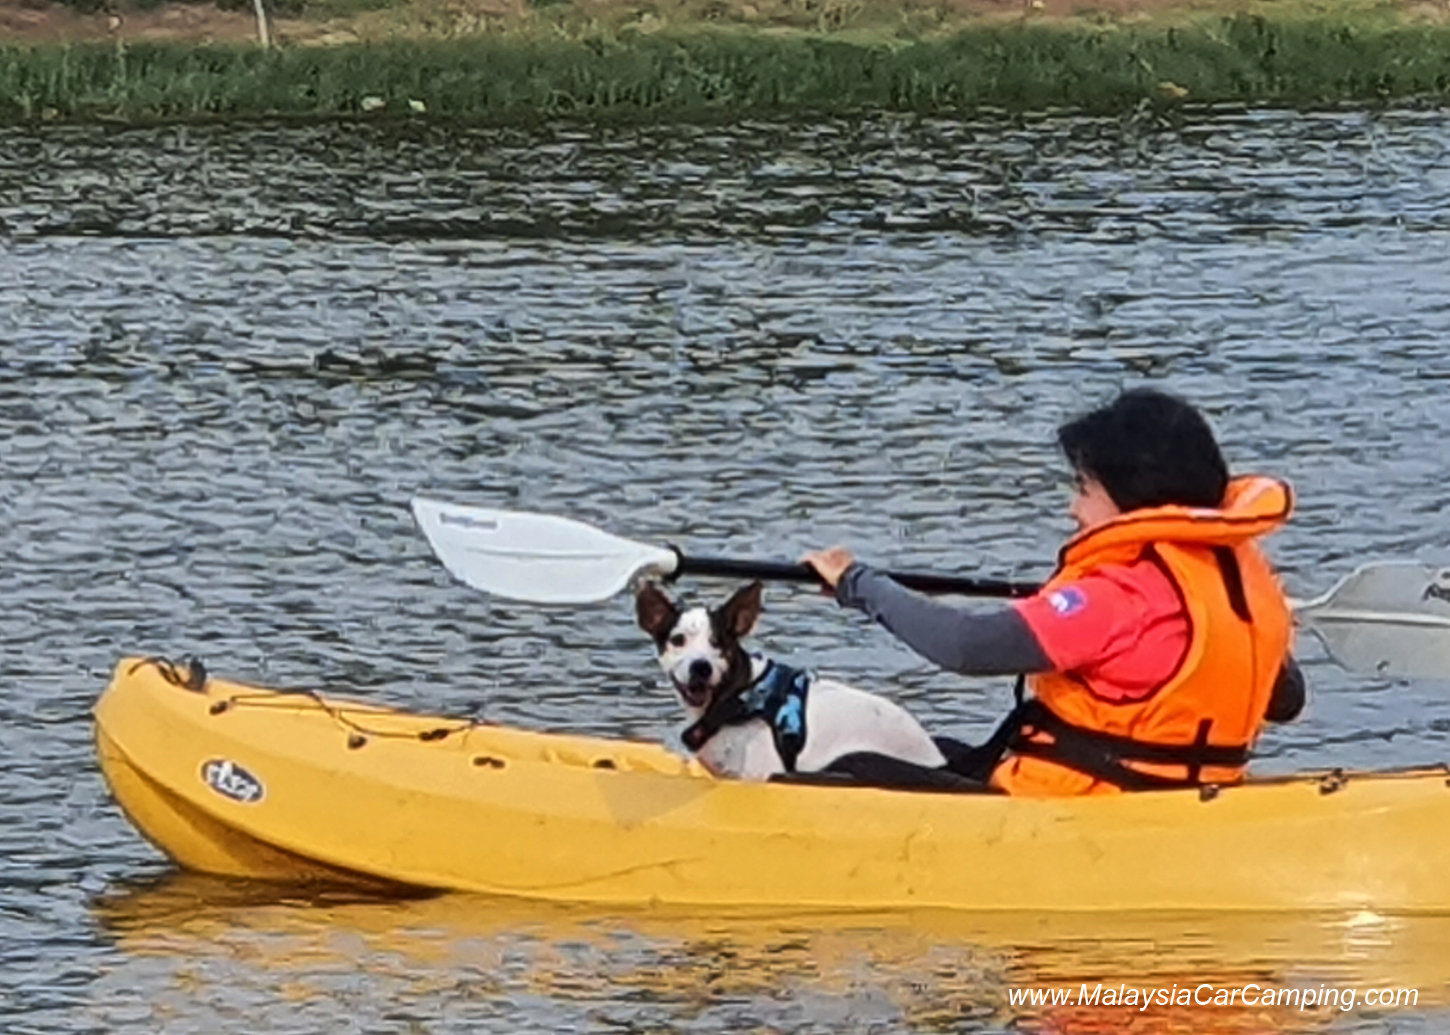 kayak_with_dogs_camping_with_dogs_puppy_lakeside_camping_malaysia_car_camping_malaysia_campsite-4